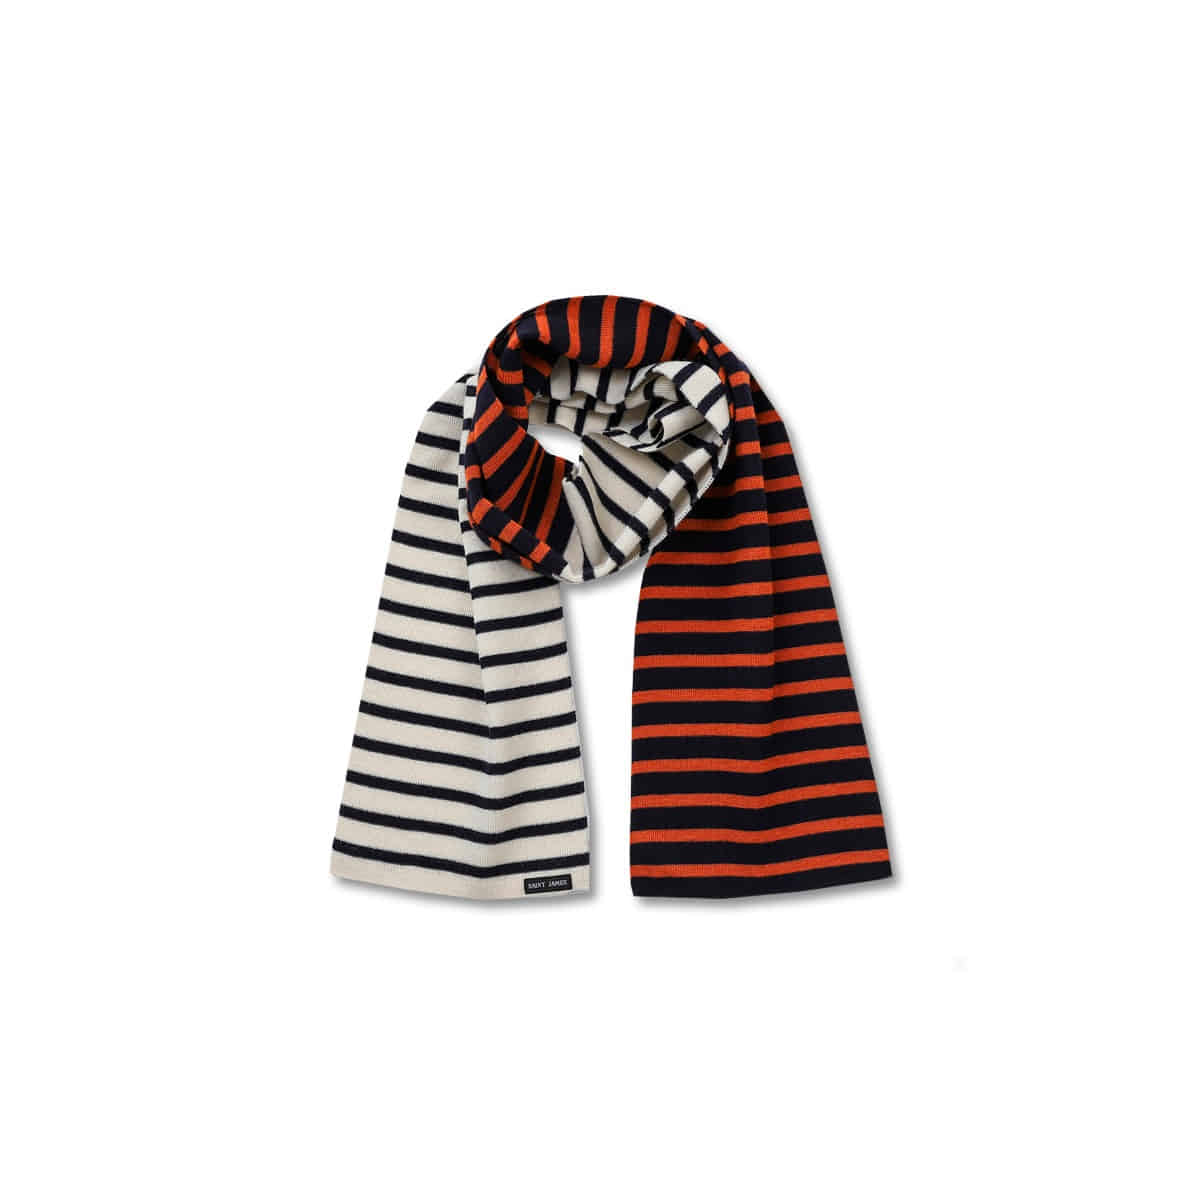 [SAINT JAMES] SCARF CRAZY 'ECRU/MARINE/MARINE/ROUILLE'